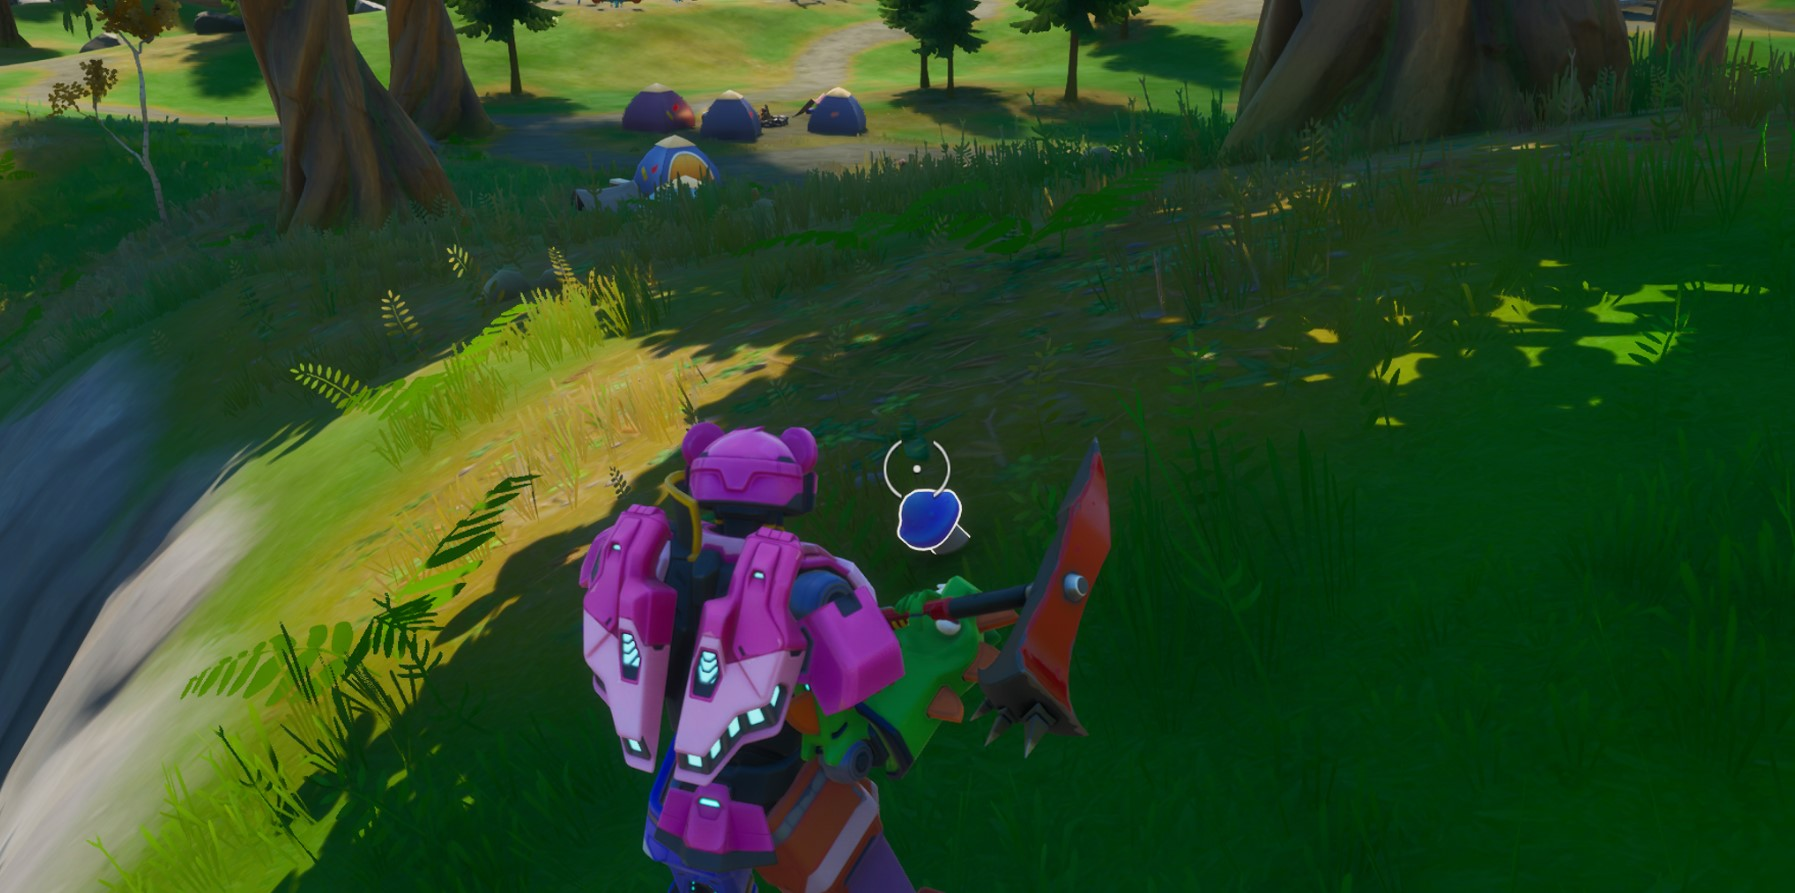 Where to stoke a Campfire, consume a Foraged Apple, consume a Foraged Mushroom in one match in Fortnite